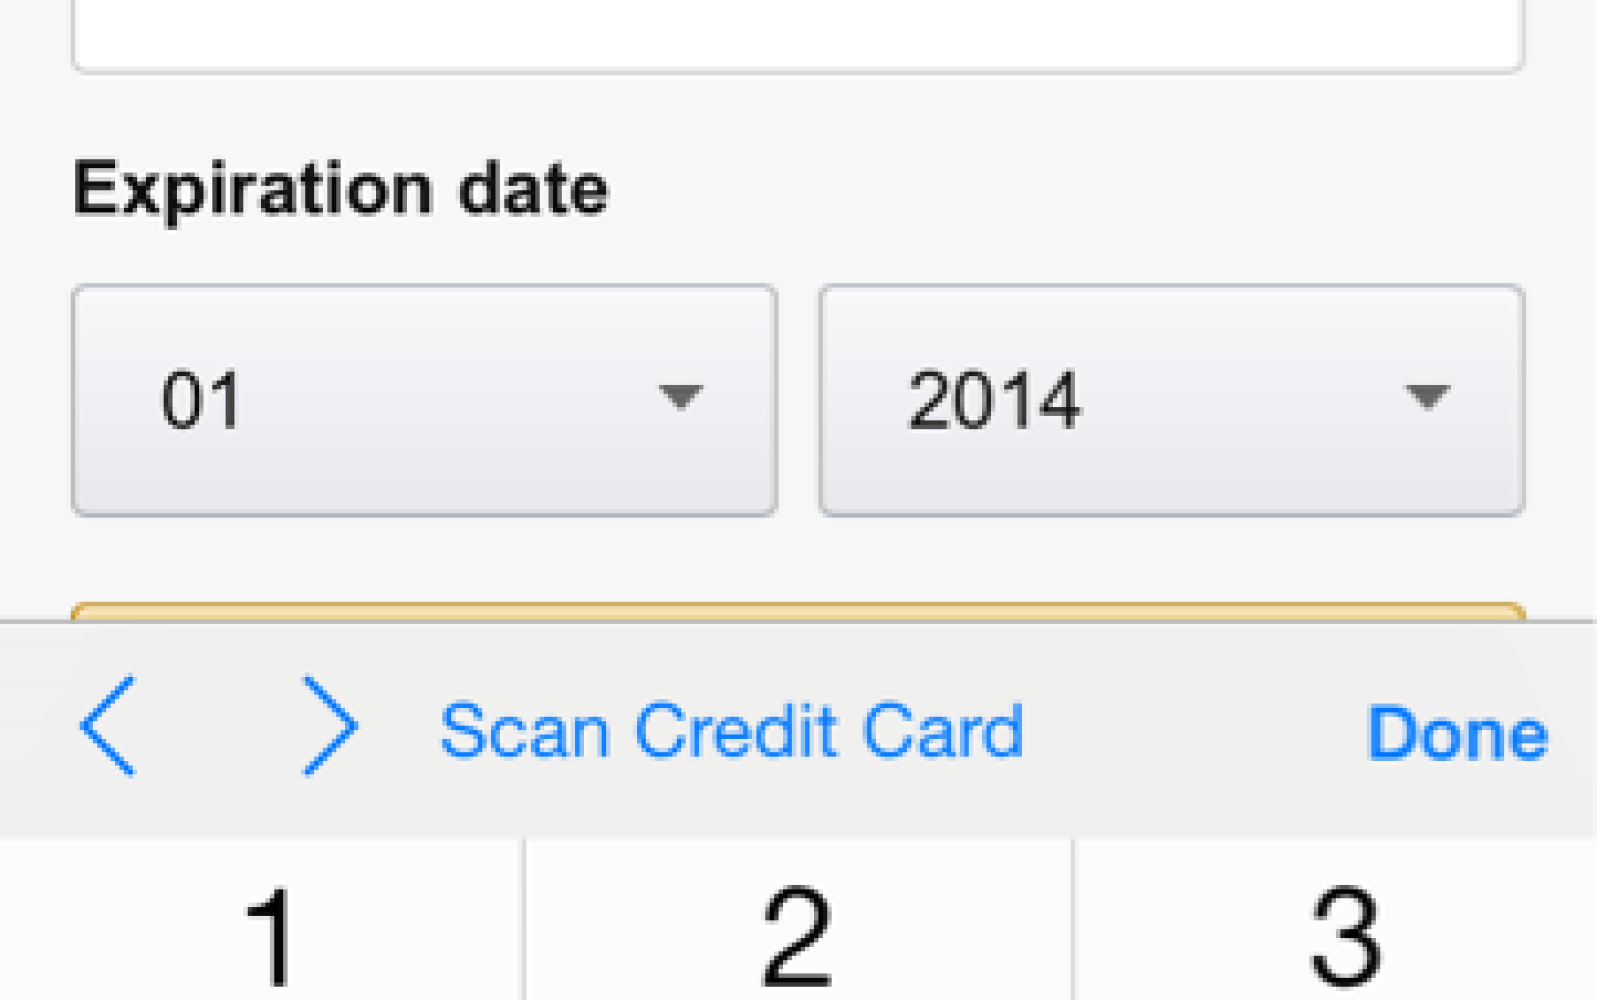 Safari in iOS 8 uses camera to scan and enter credit card info